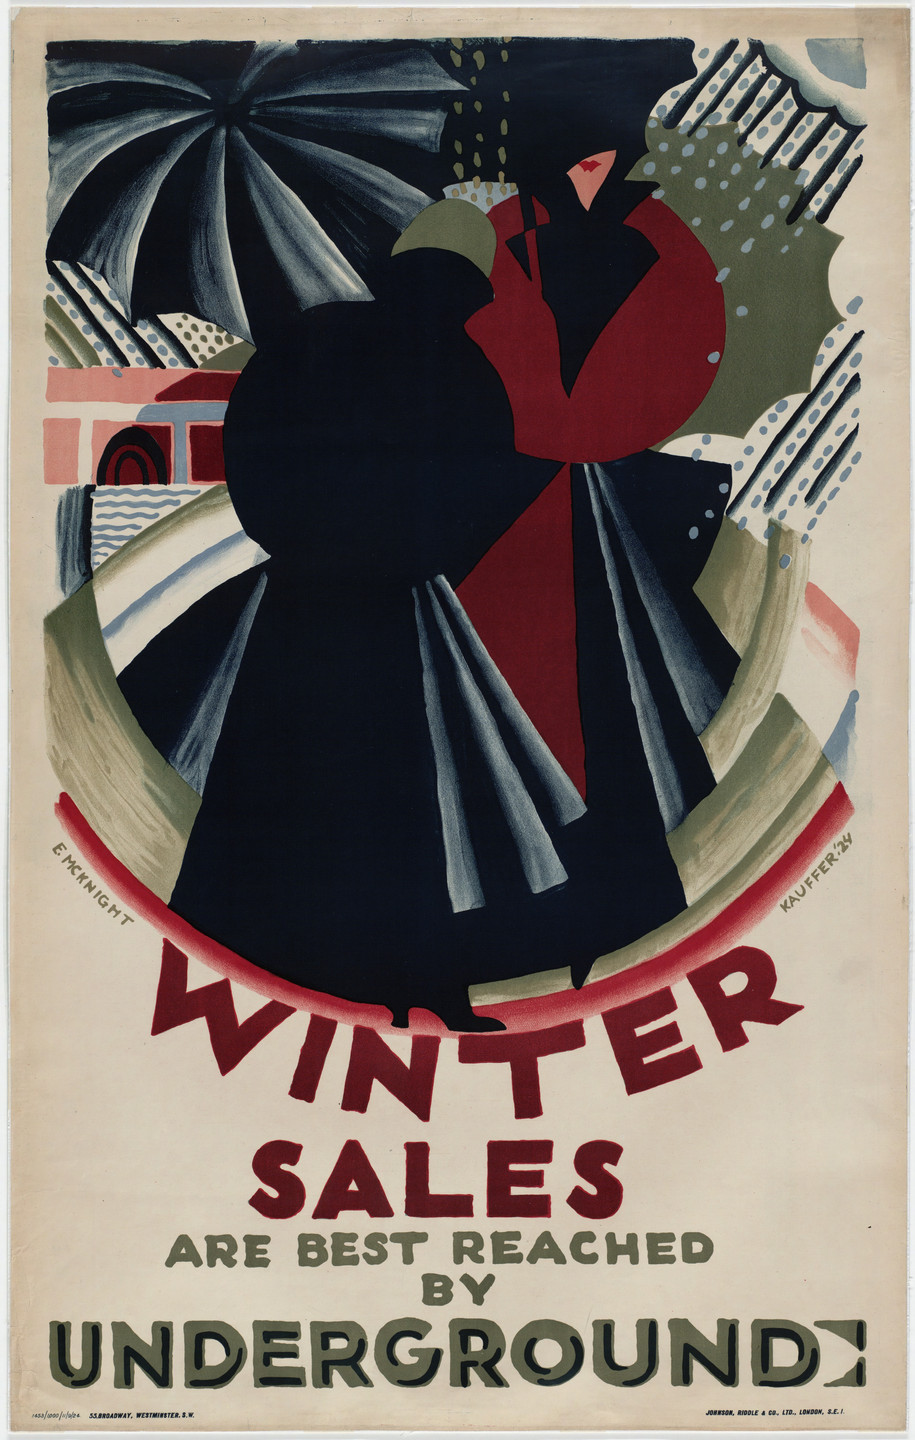 E. McKnight Kauffer. Winter Sales Are Best Reached by Underground. 1924